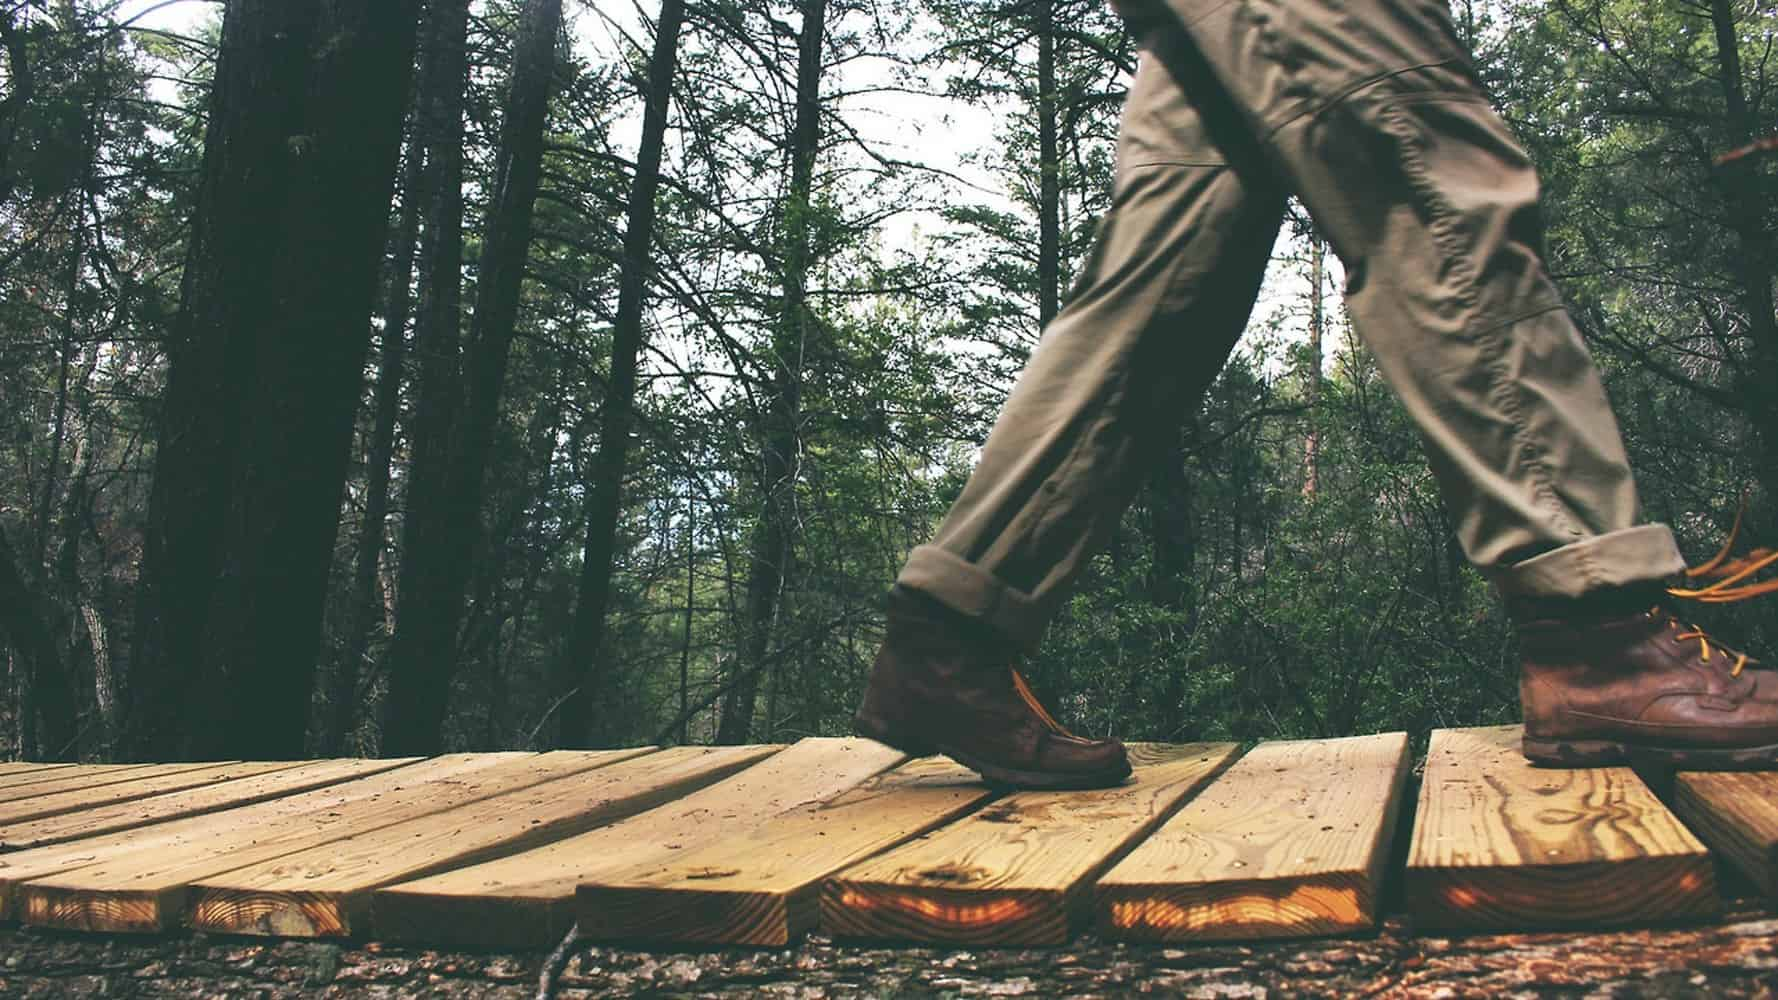 A person walking on wood in a forest.